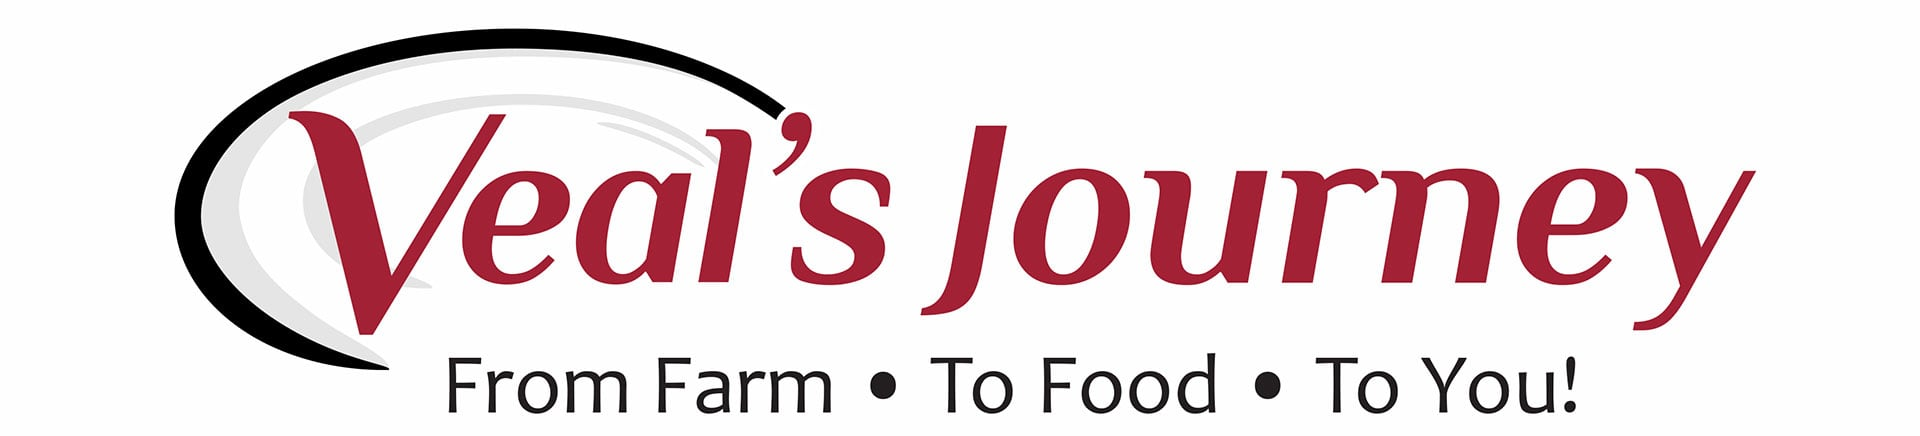 Veal's Journey from Farm to Food to You!